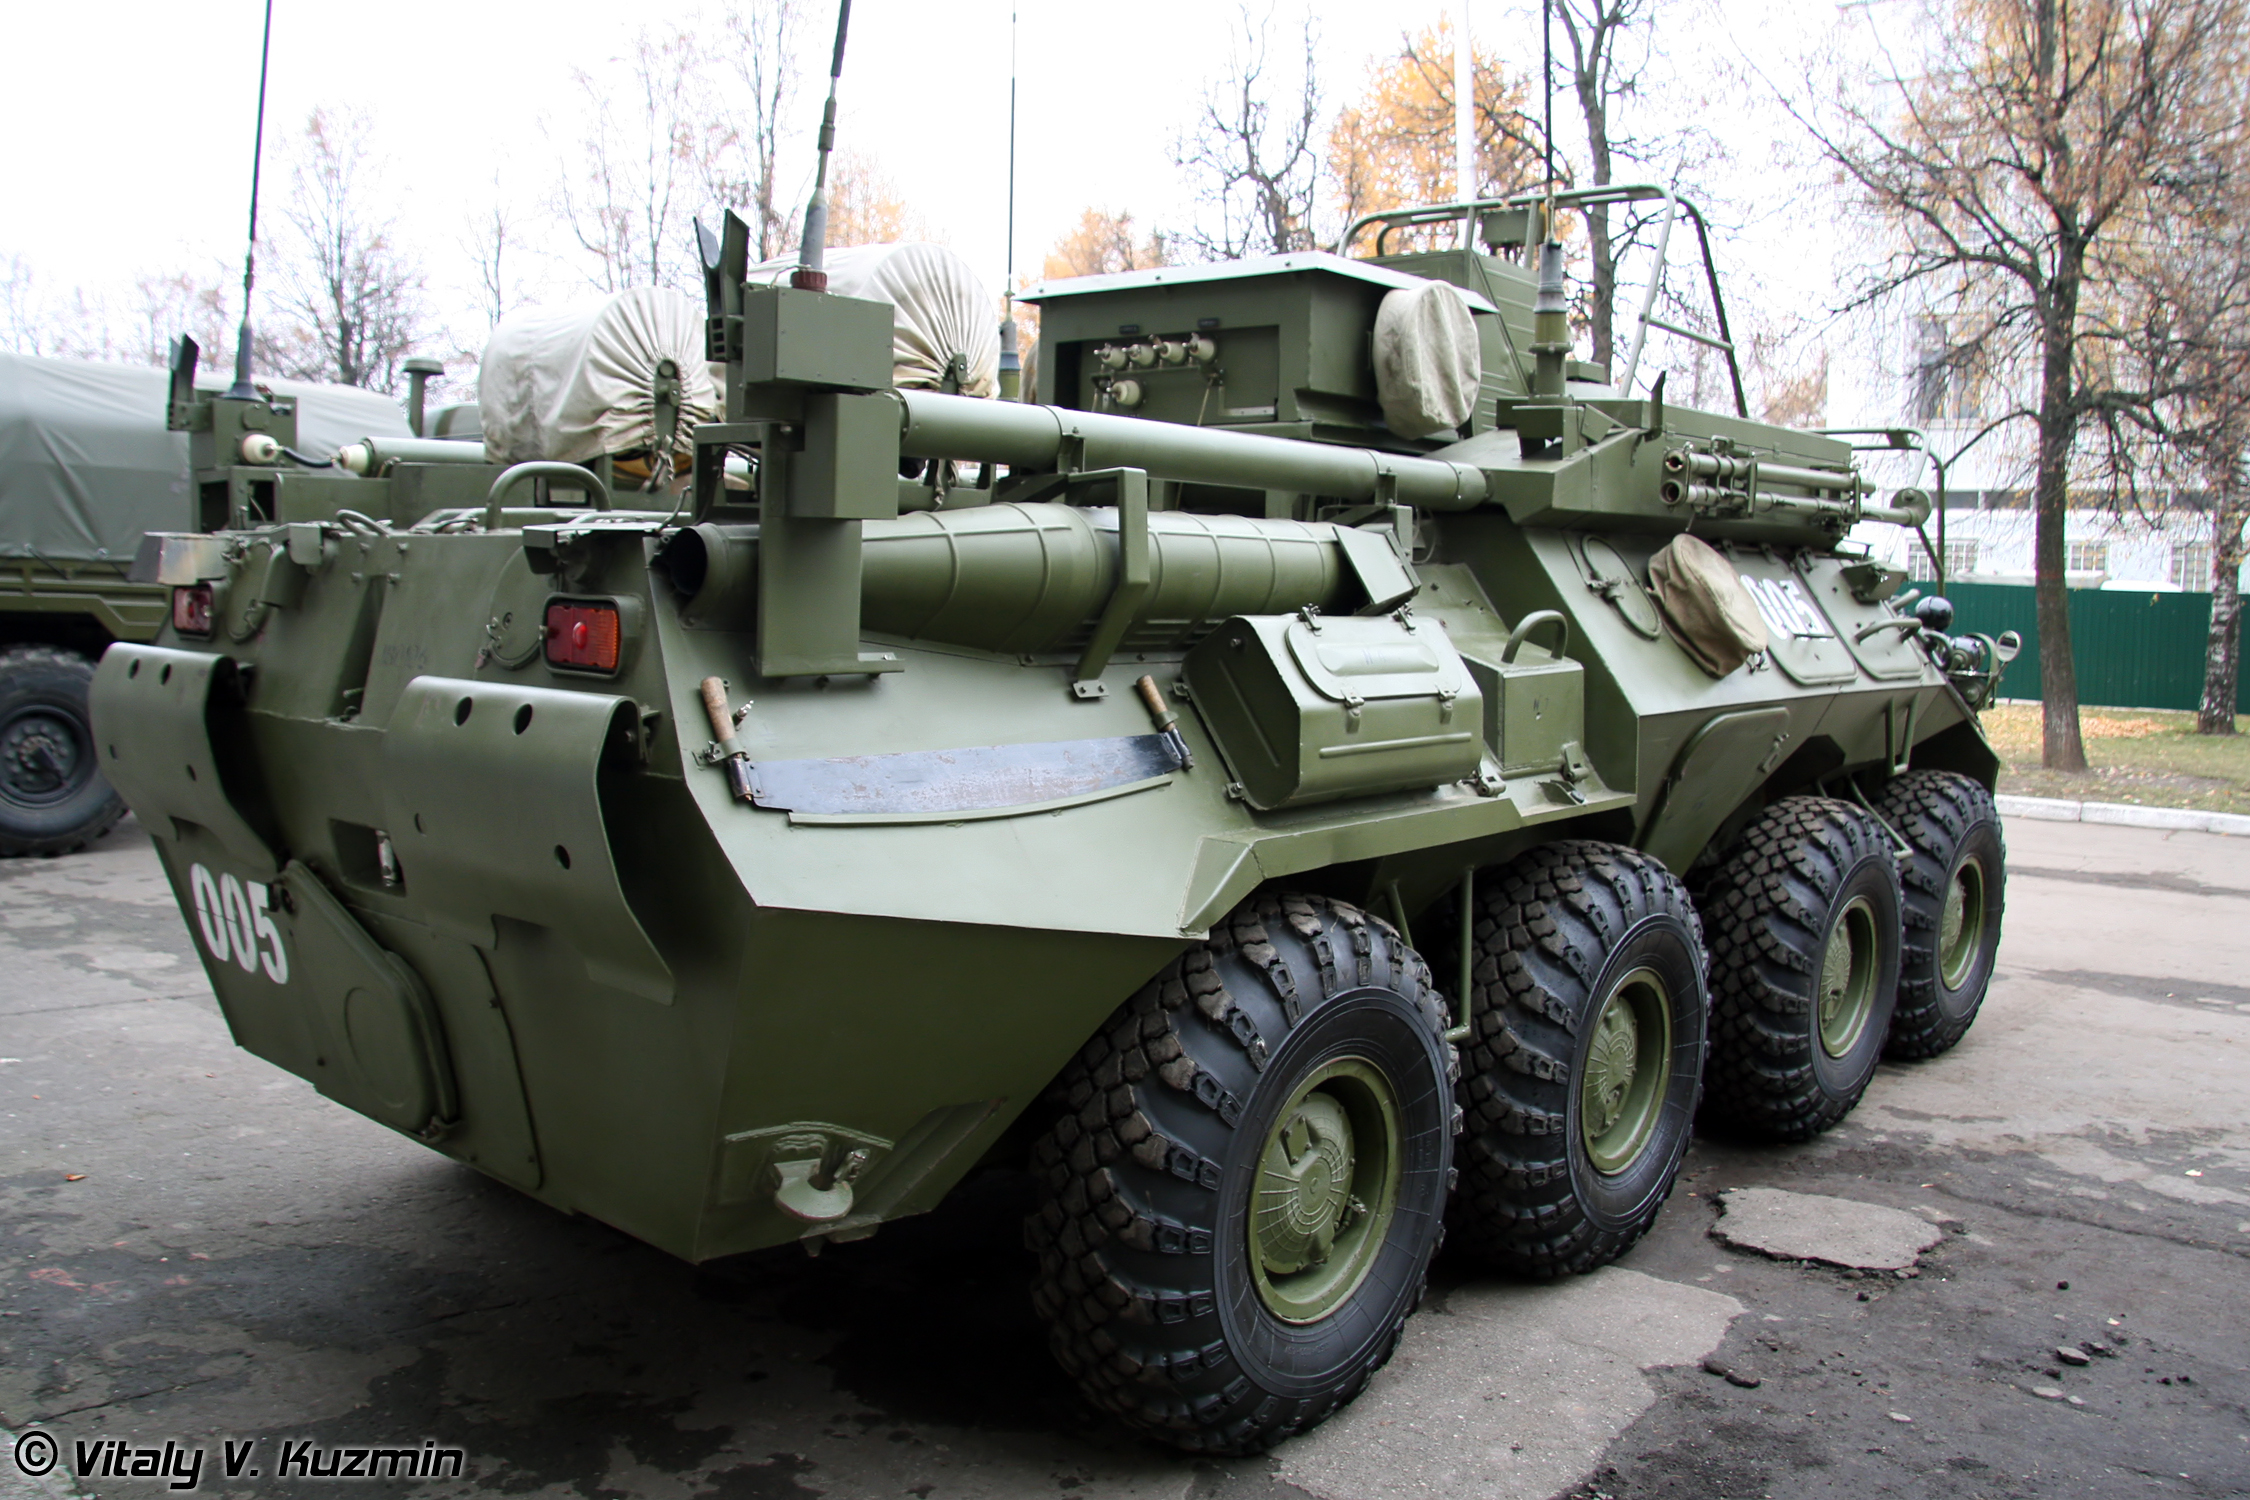 The 74th Guards Motorized Rifle Brigade received the first upgraded BMP-2M with Berehok module 94